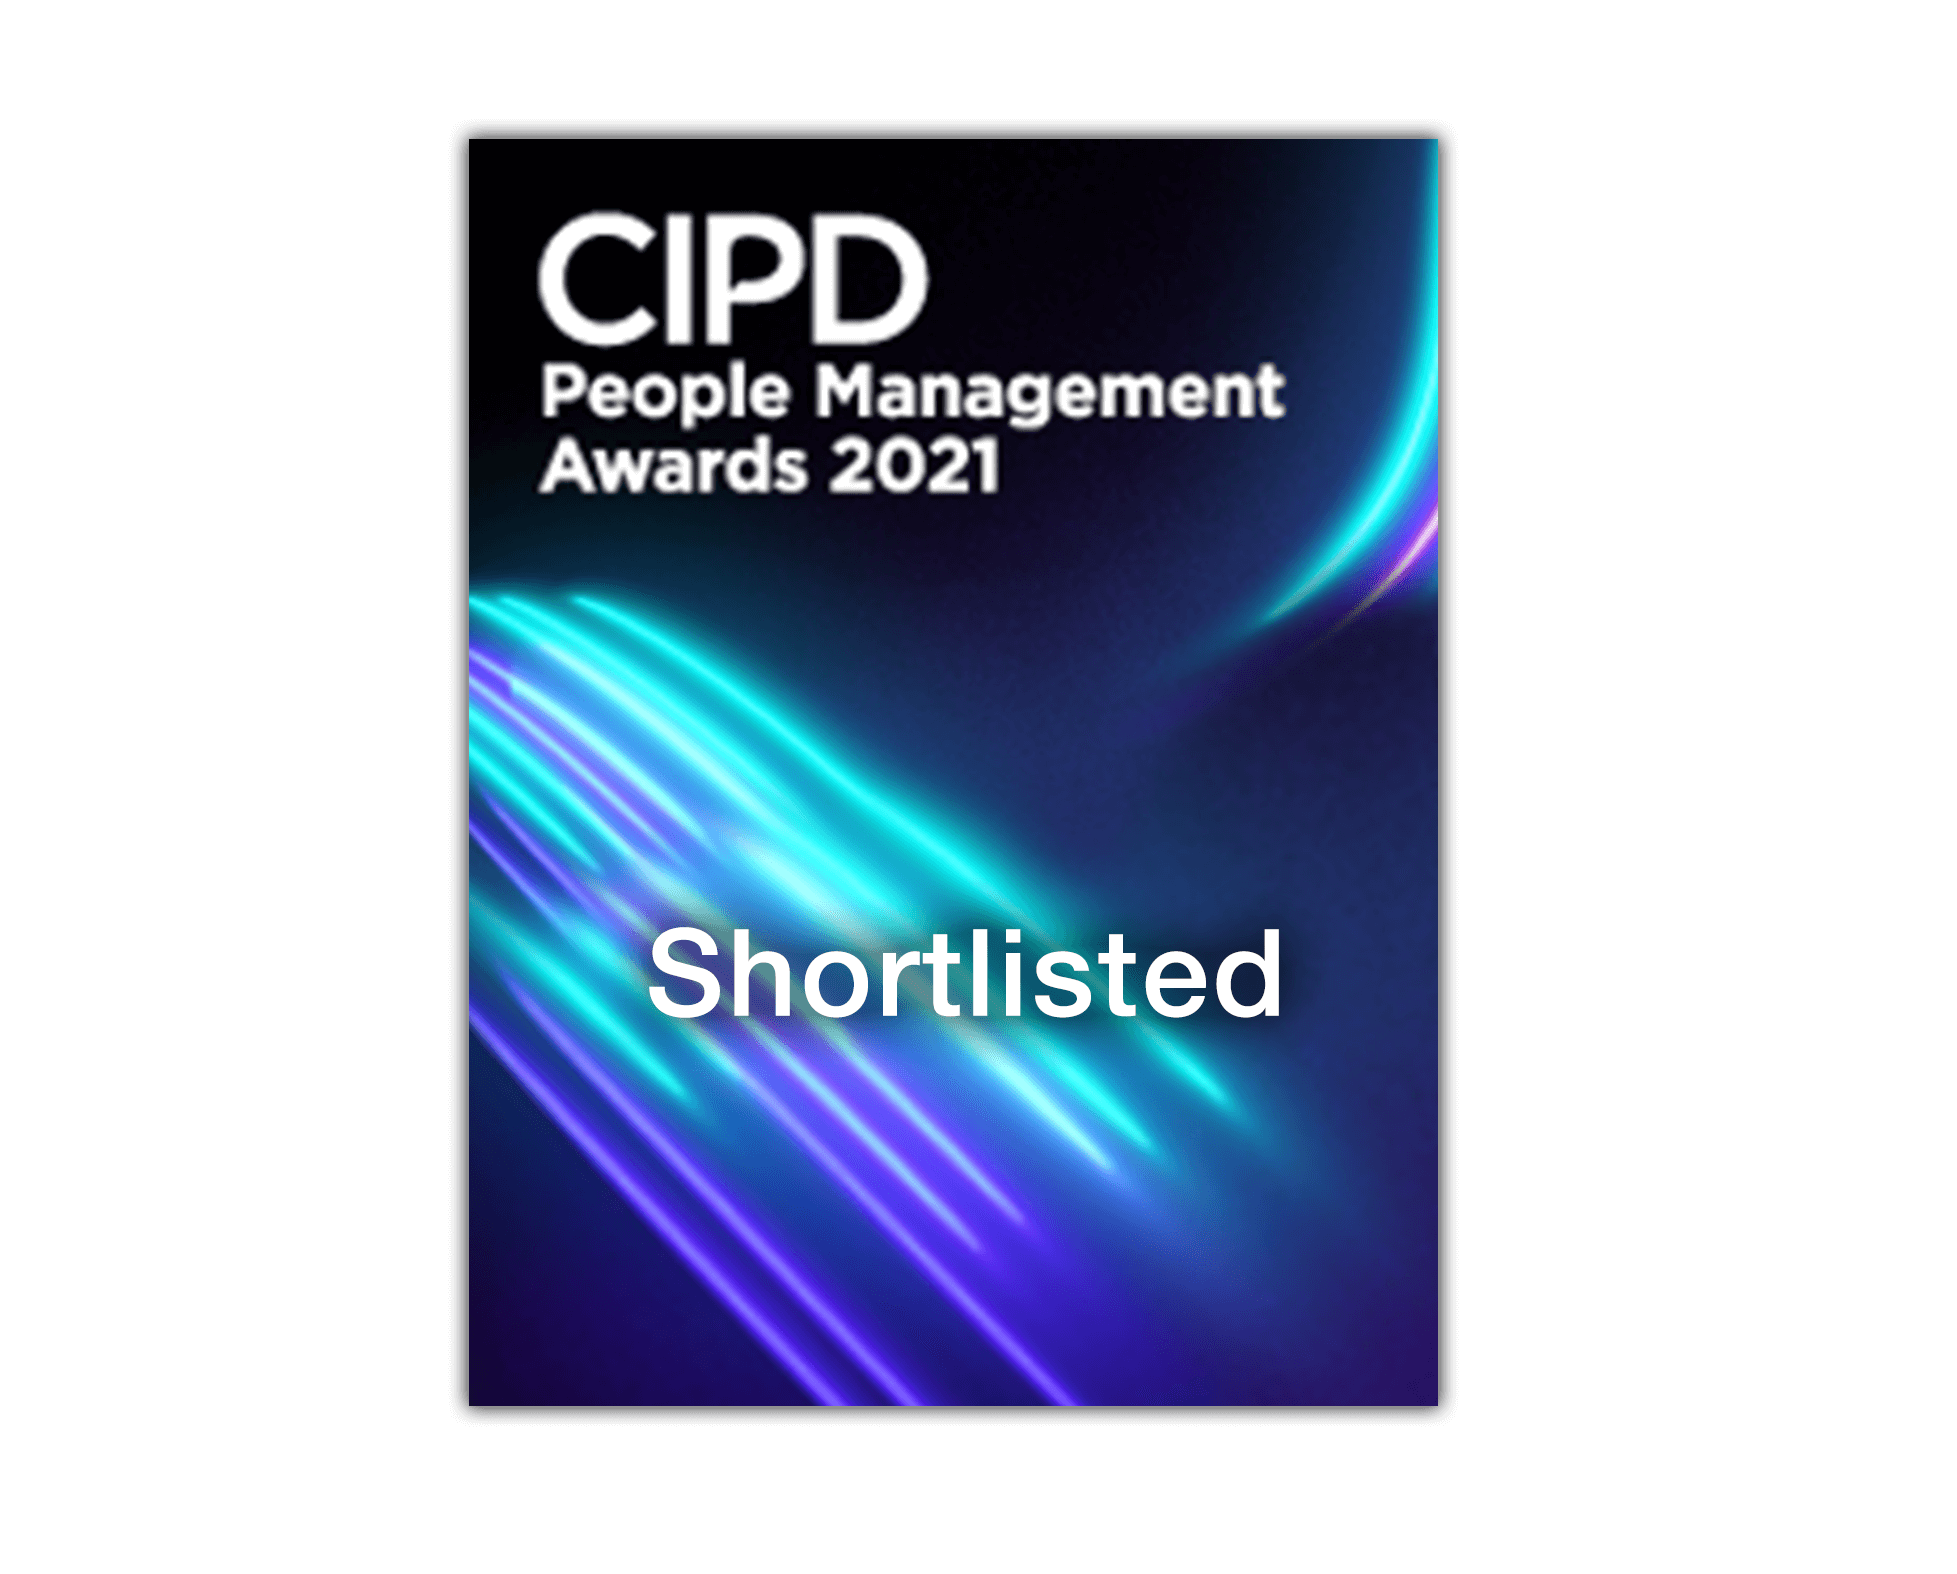 applaud_CIPD_inspiring_workplaces_shortlisted_award_img